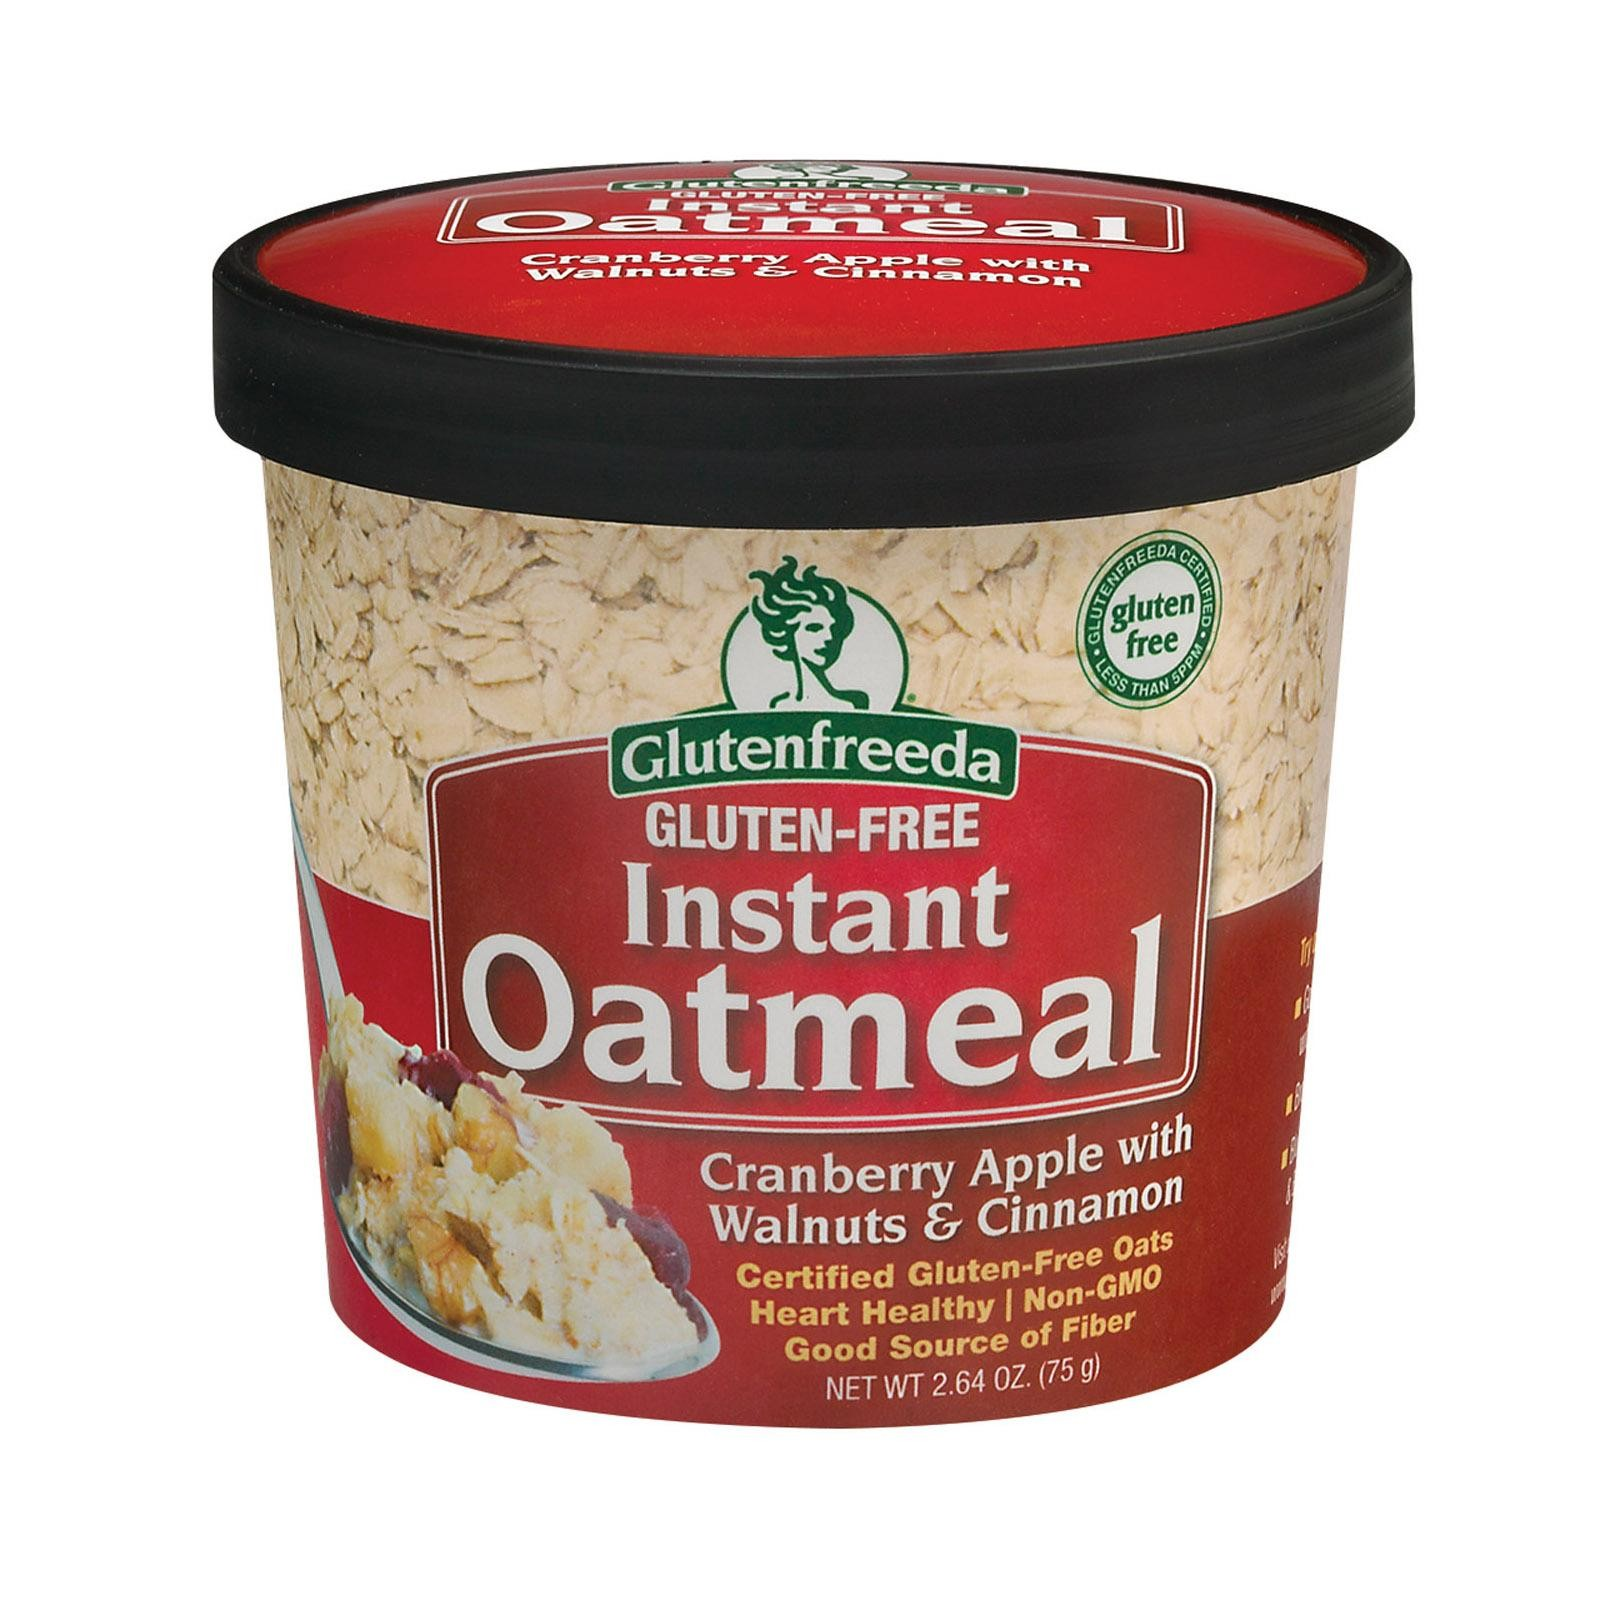 Gluten Freeda Instant Oatmeal Cup - Cranberry Apple With Walnuts And Cinnamon - Pack Of 12 - 2.64 Oz.